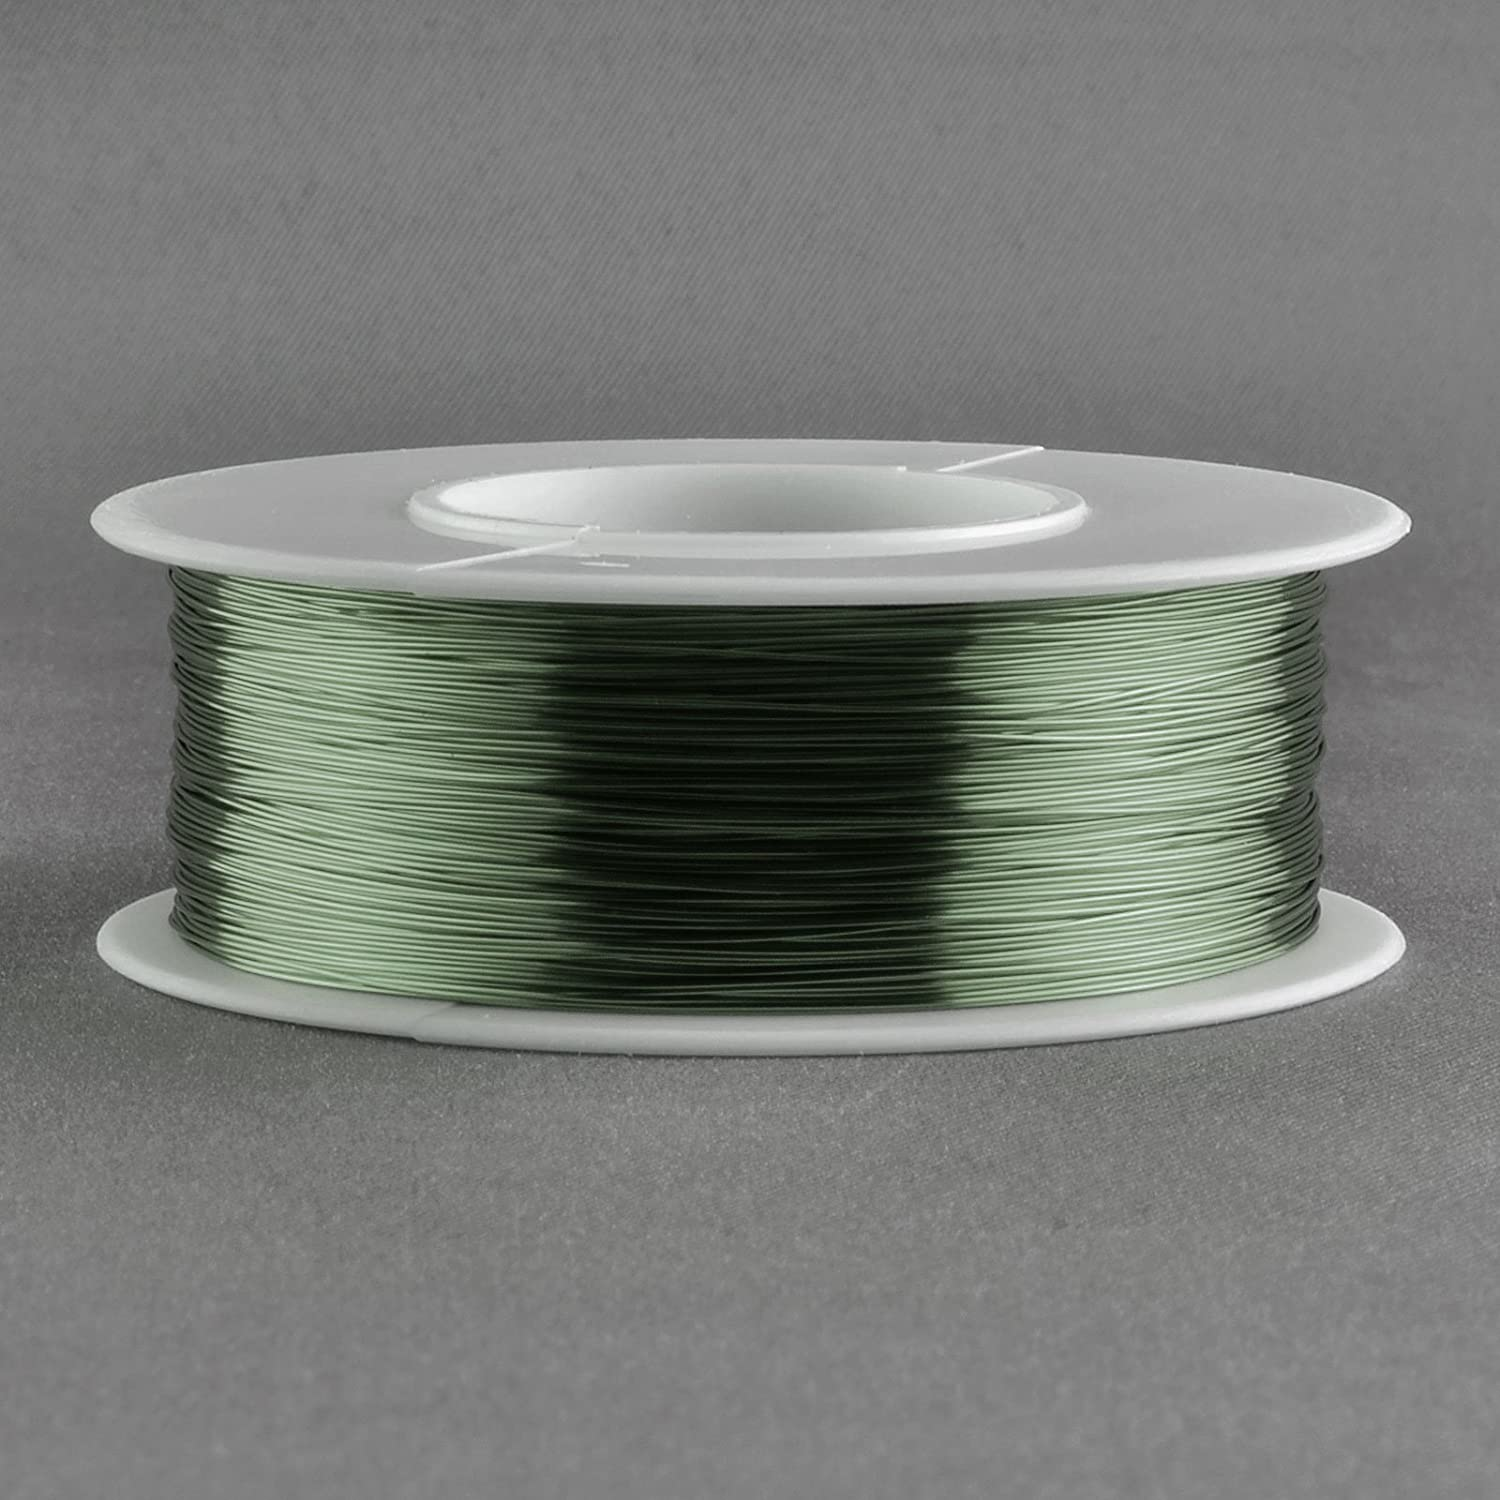 Magnet Wire 30 Gauge AWG Enameled Copper 785 Feet Coil Winding ...